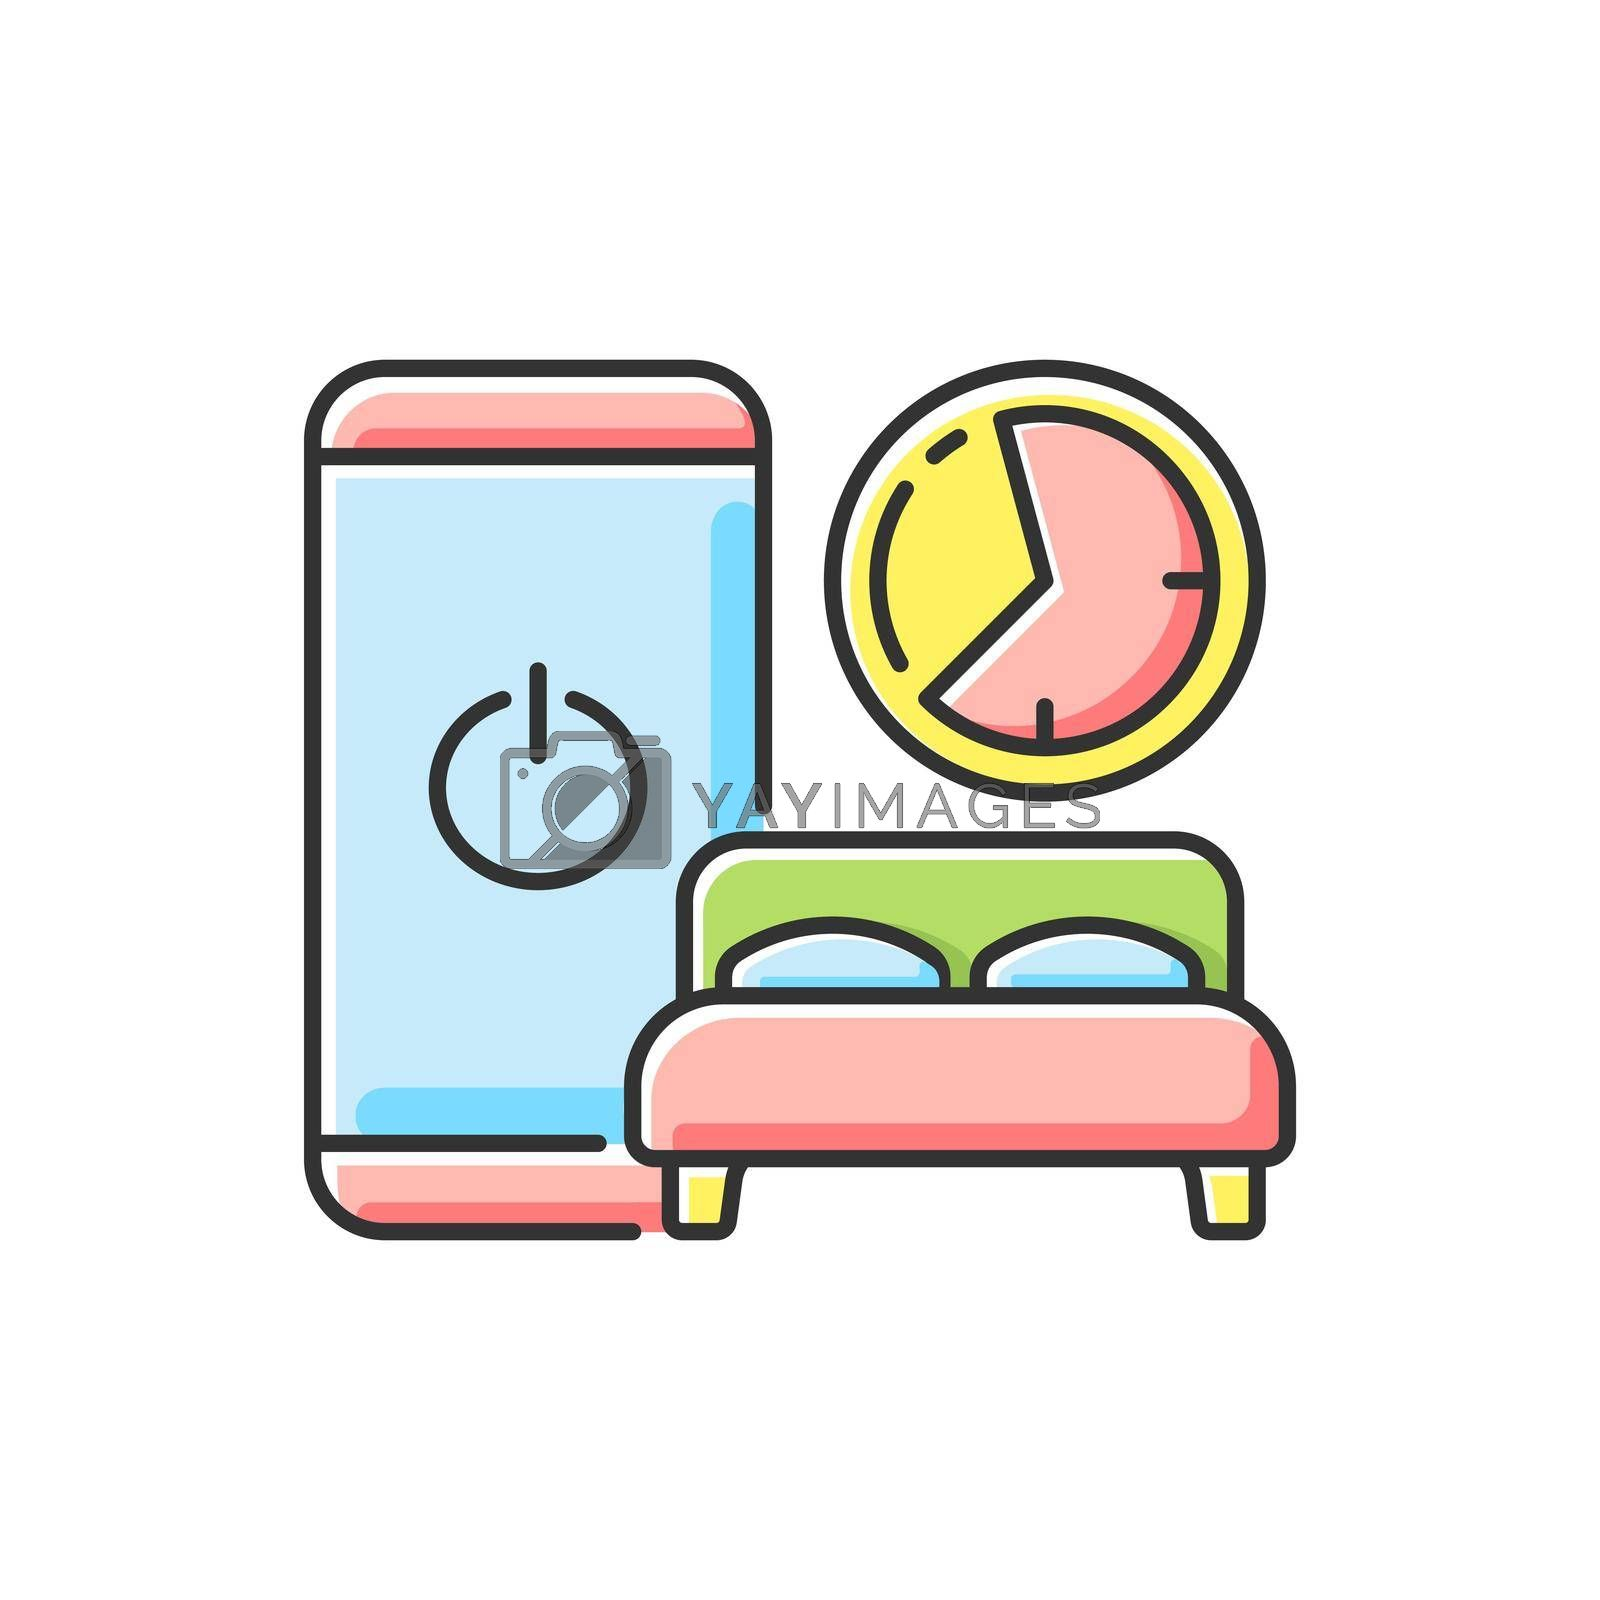 Sleep hygiene RGB color icon. Healthy nighttime routine. Bedtime activity. Schedule to prevent insomnia. Digital detox. Stop gadget addiction. Life improvement. Isolated vector illustration